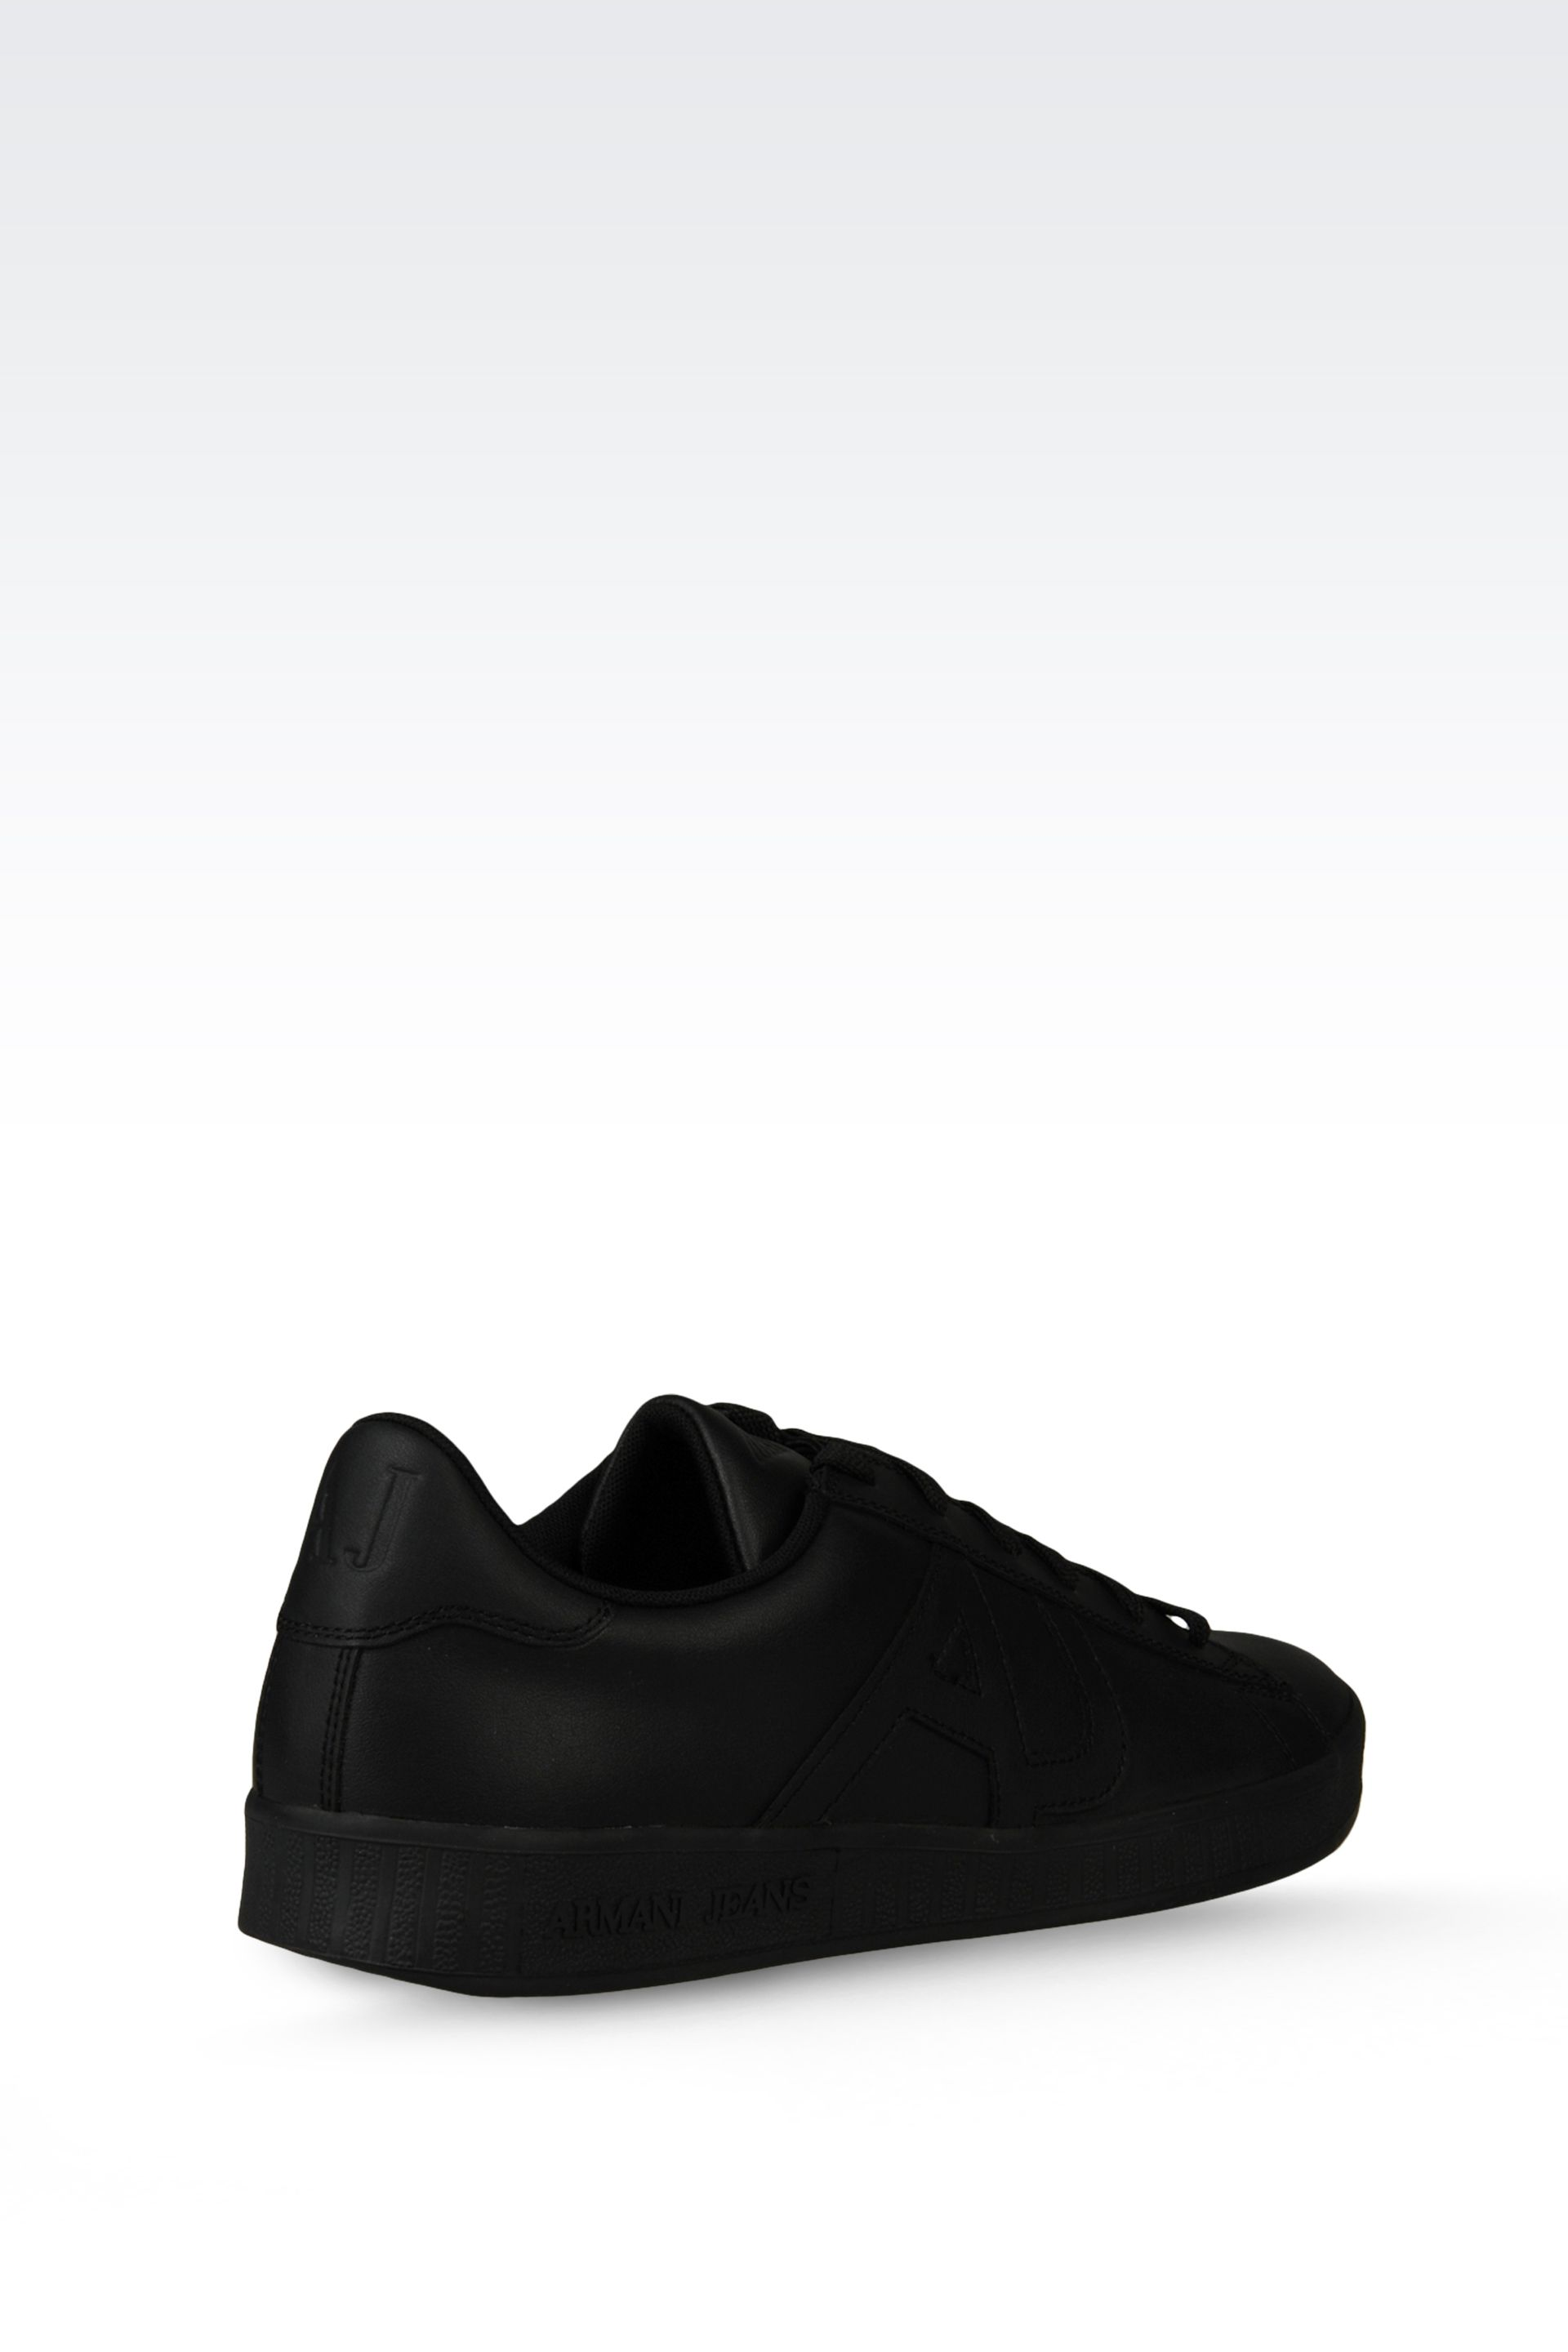 armani jeans sneaker in leather with logo in black for men lyst. Black Bedroom Furniture Sets. Home Design Ideas